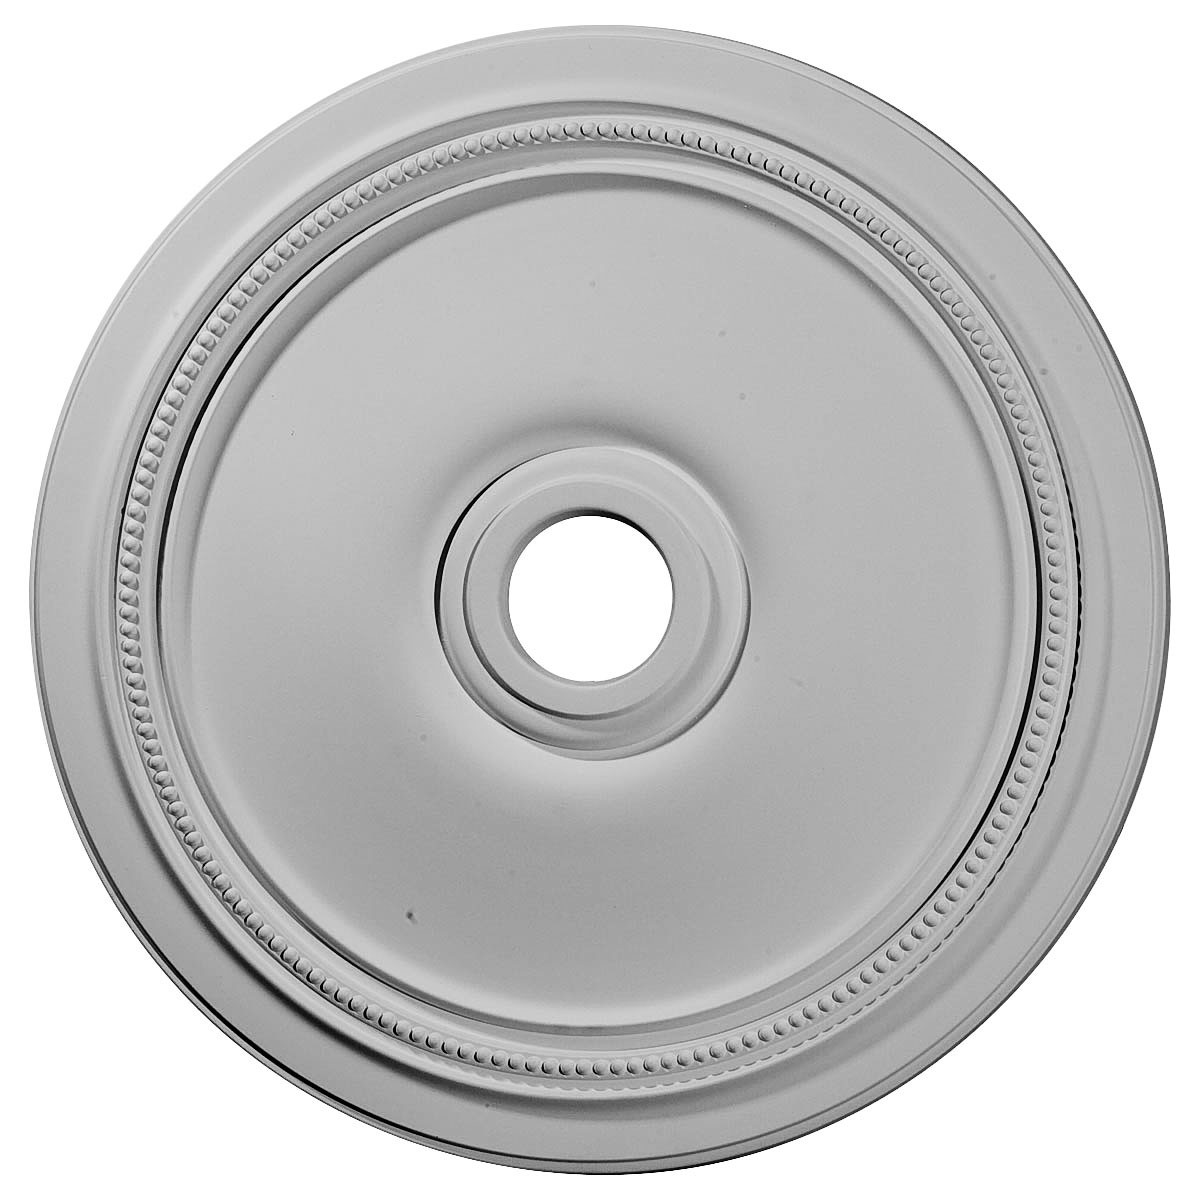 """EM-CM24DI - 24""""OD x 3 5/8""""ID x 1 1/4""""P Diane Ceiling Medallion (Fits Canopies up to 6 1/4"""")"""